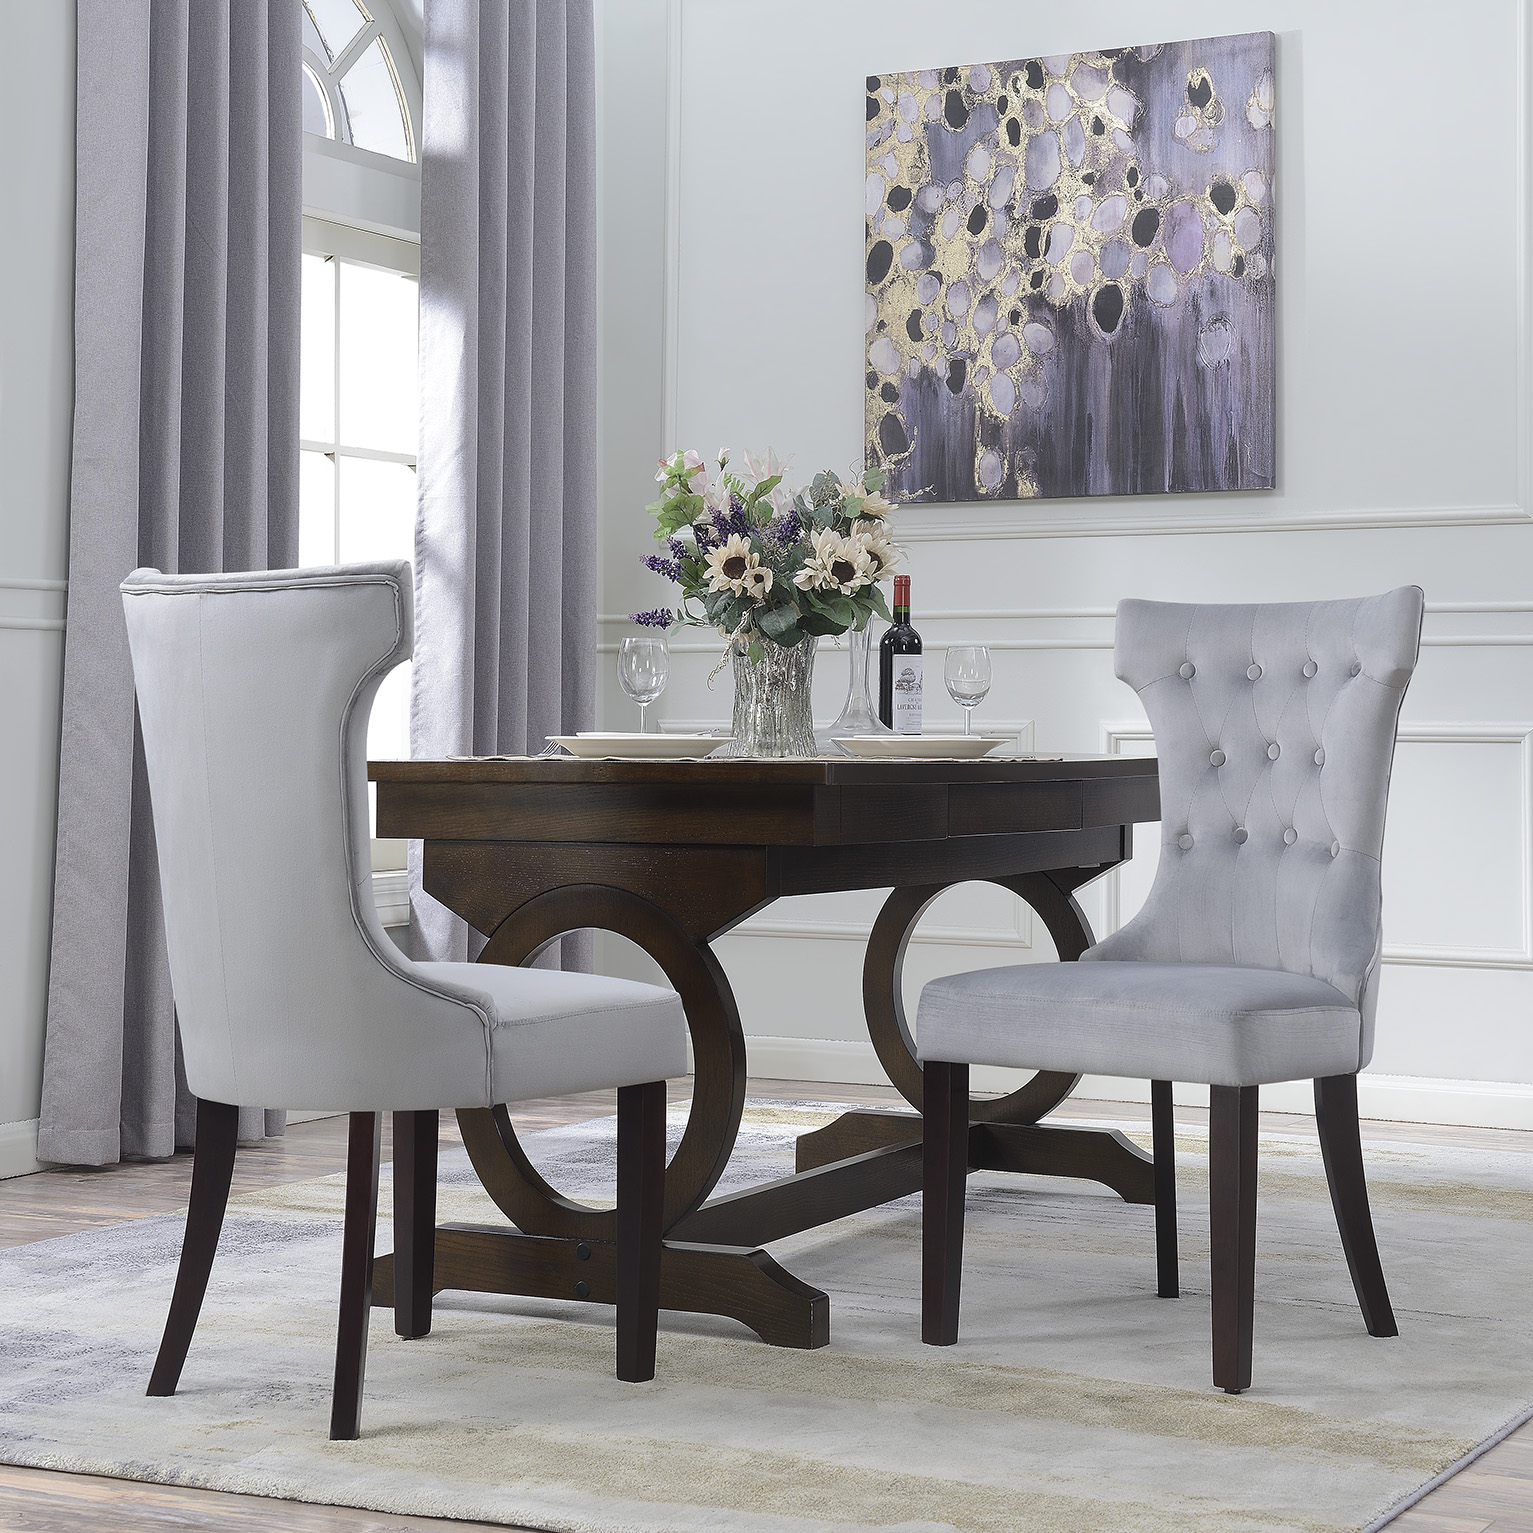 Grey Dining Room Chairs: Set Of 2 Elegant Tufted Fabric Armless Side Chairs Modern